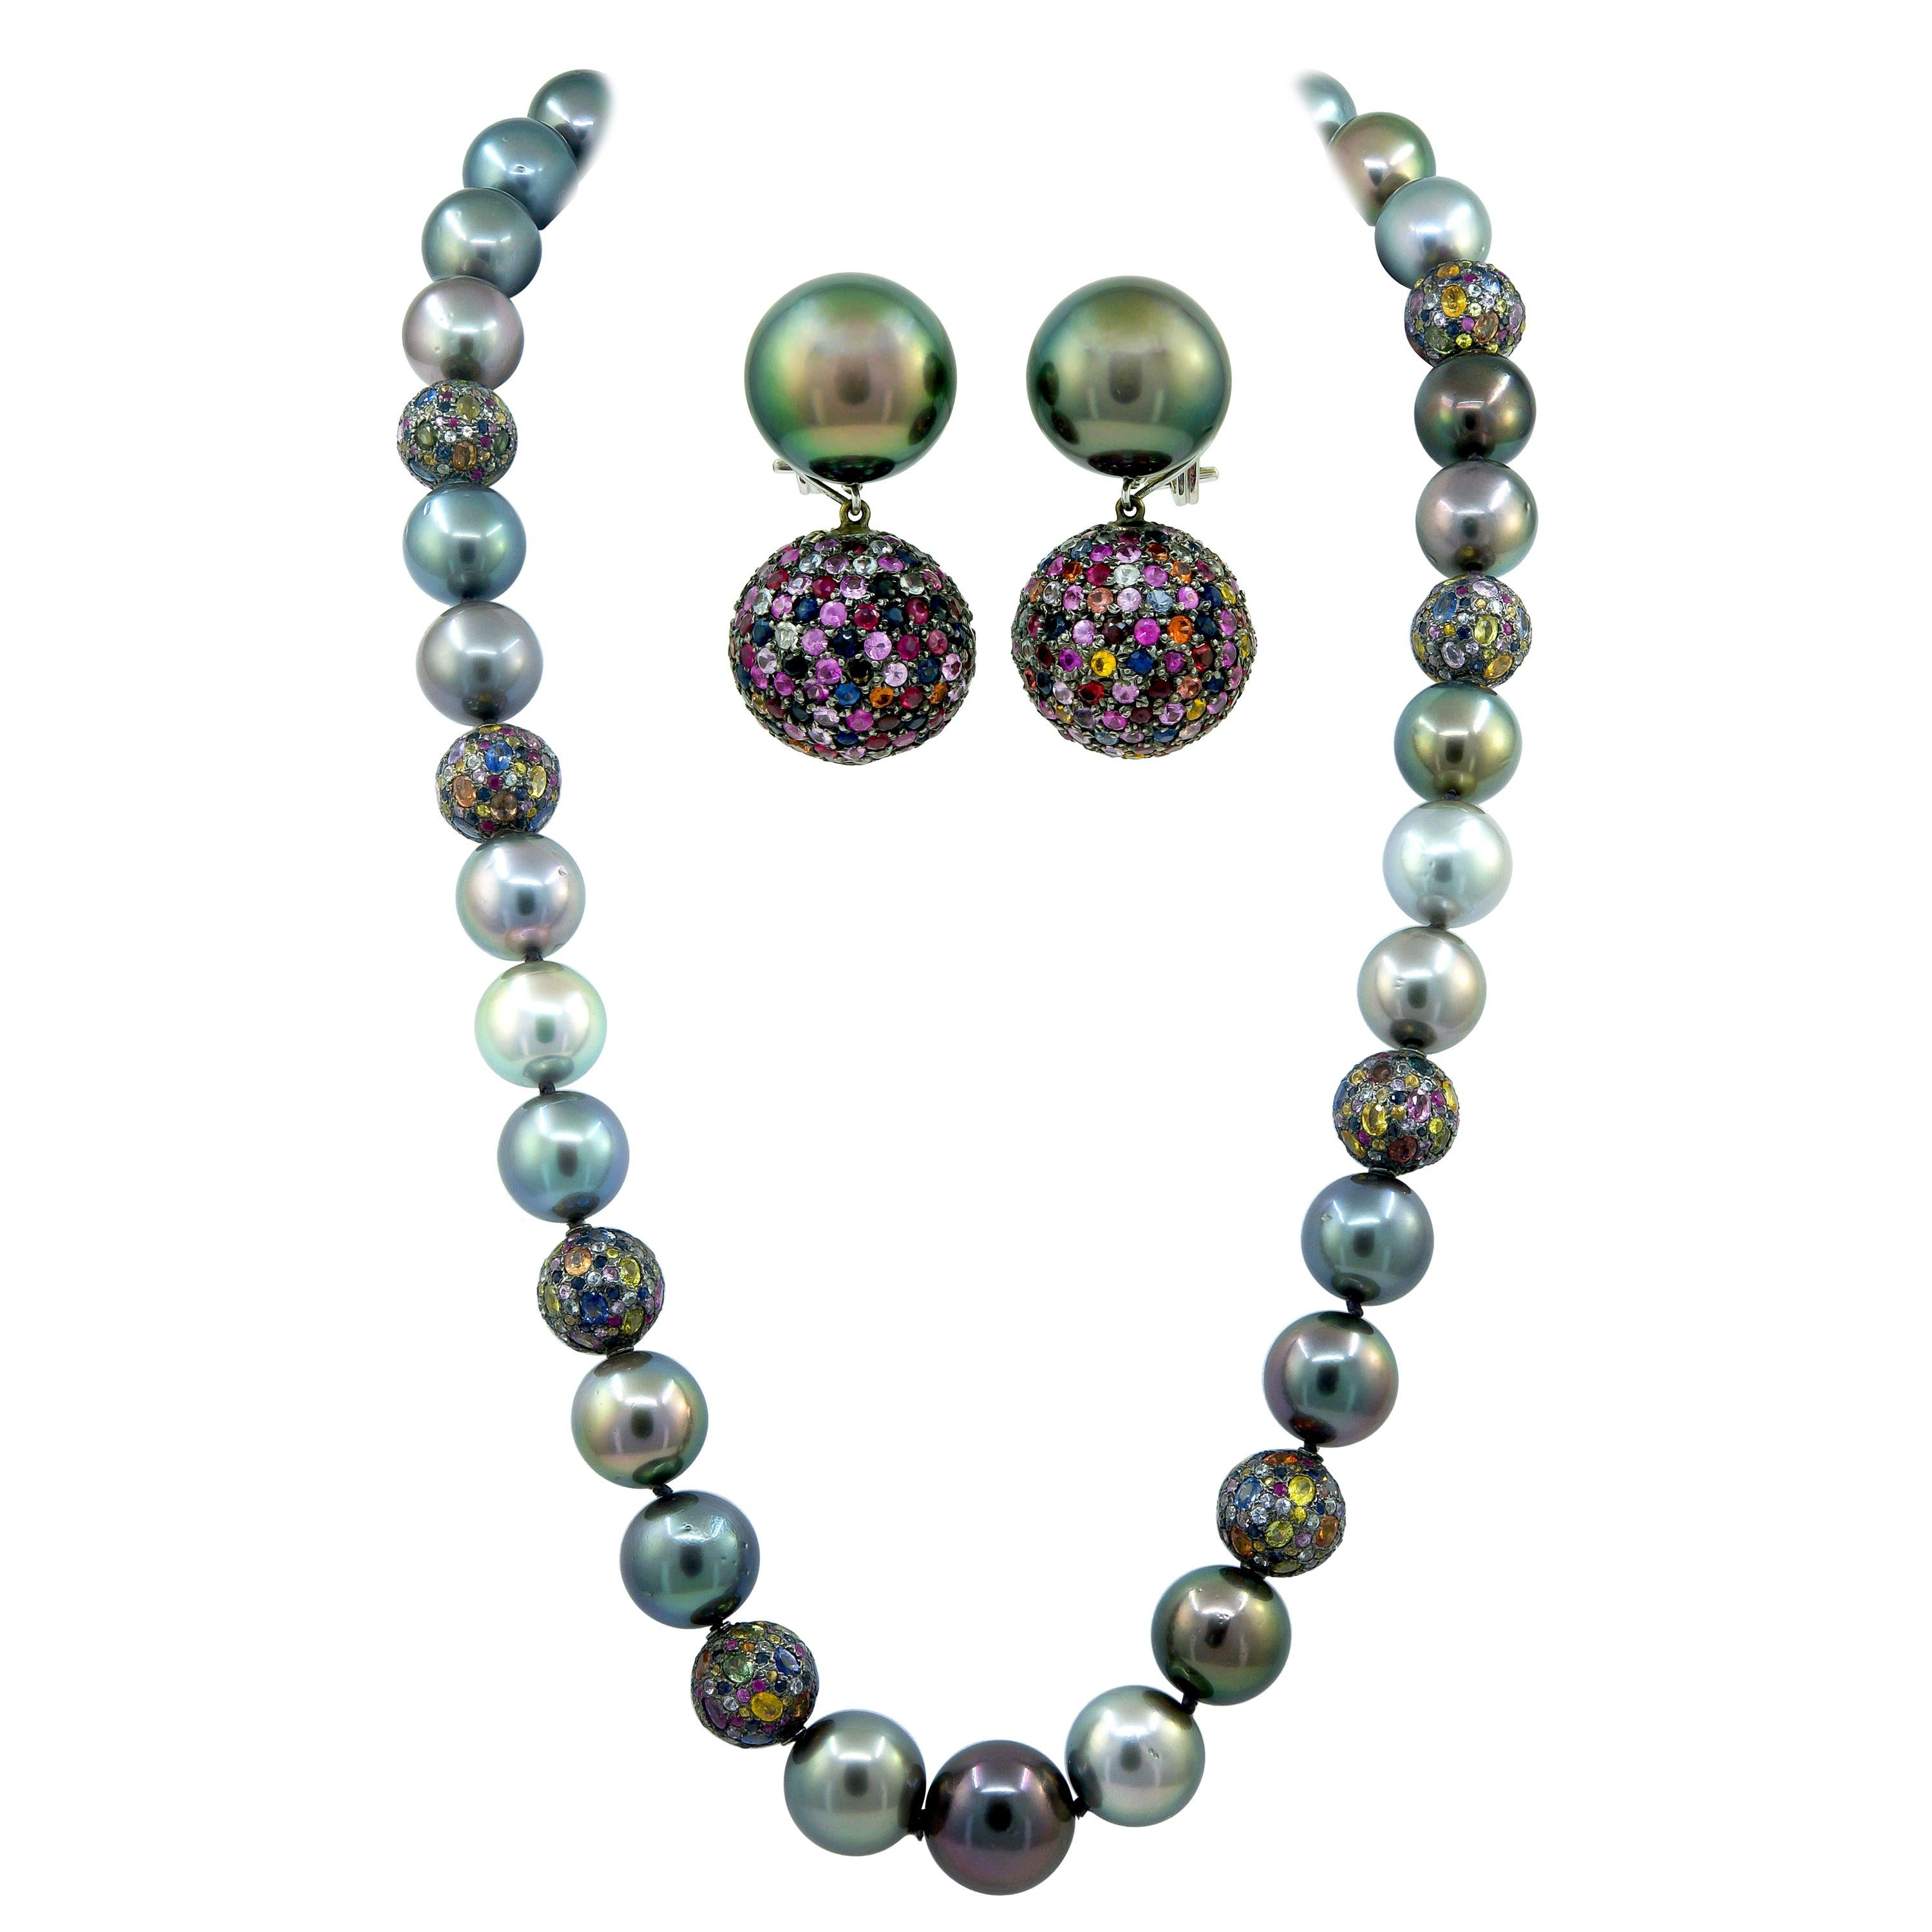 Haume Pearl Sapphire White Gold Necklace and Convertible Earrings Set